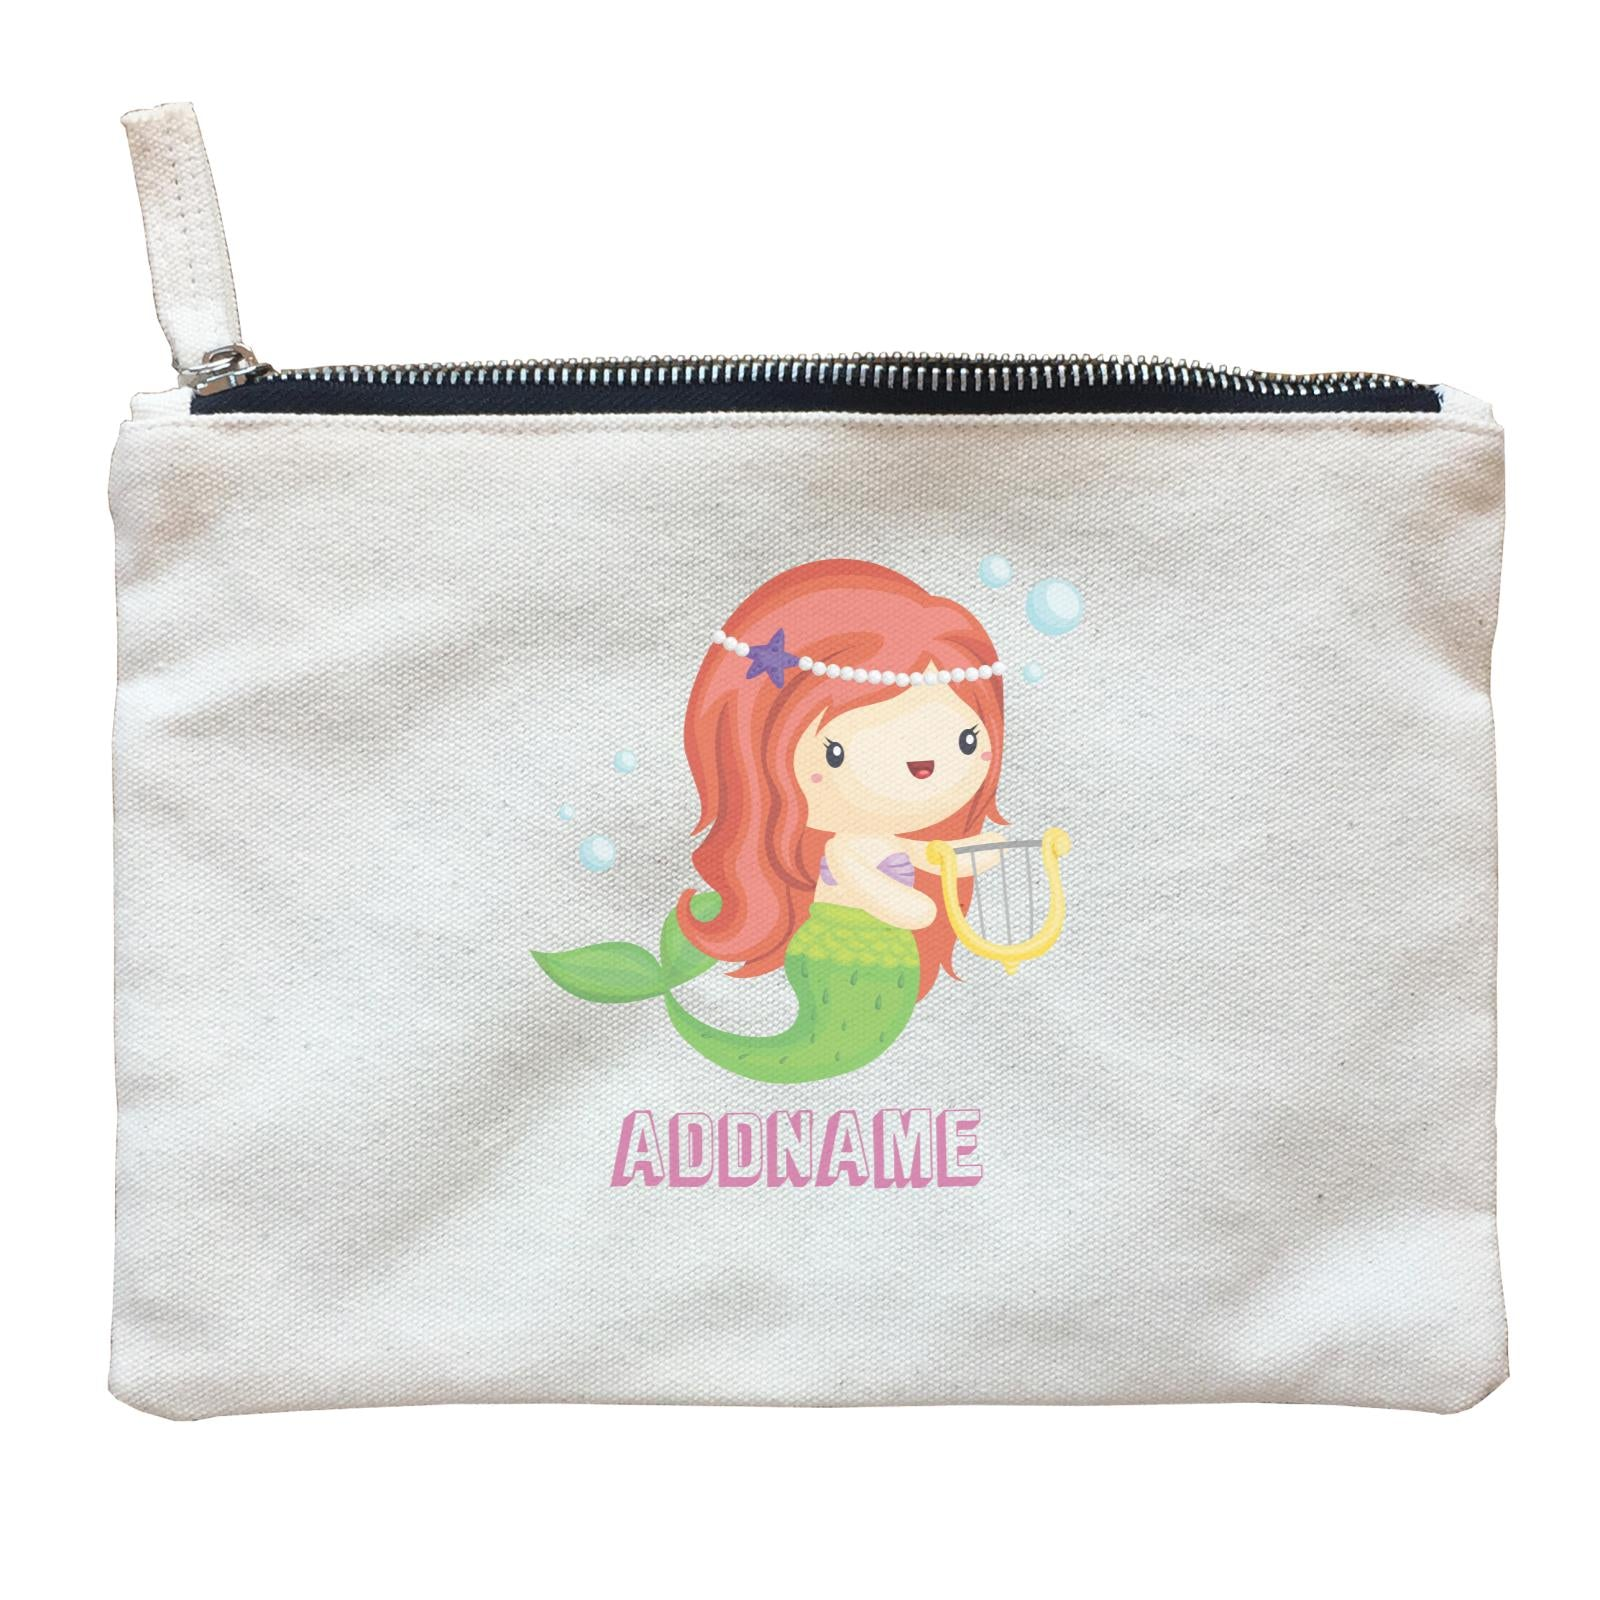 Birthday Mermaid Red Long Hair Mermaid Playing Harp Addname Zipper Pouch